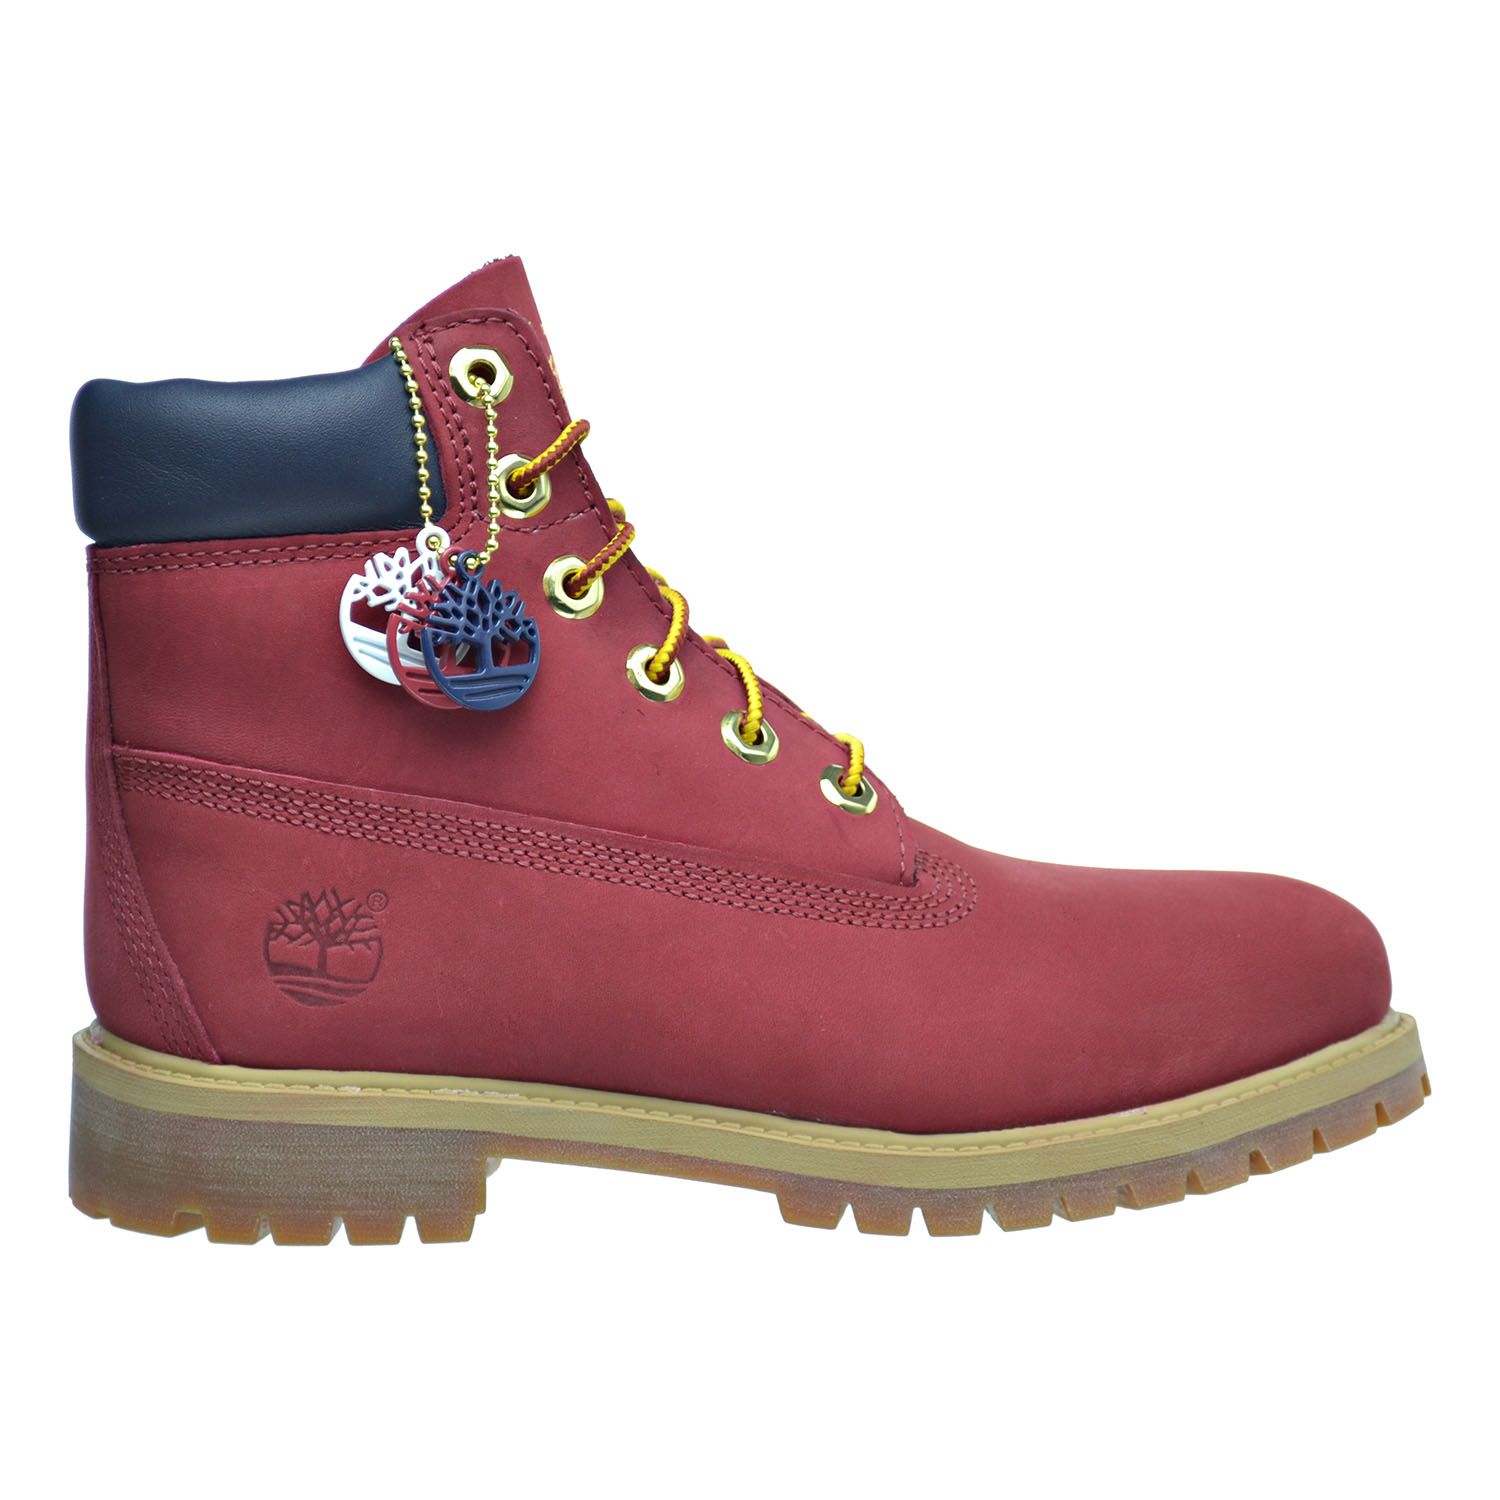 "Timberland 6 Inch Premium ""Patriotic Red"" Big Kid's Boots Red tb0a1fnp by Timberland"